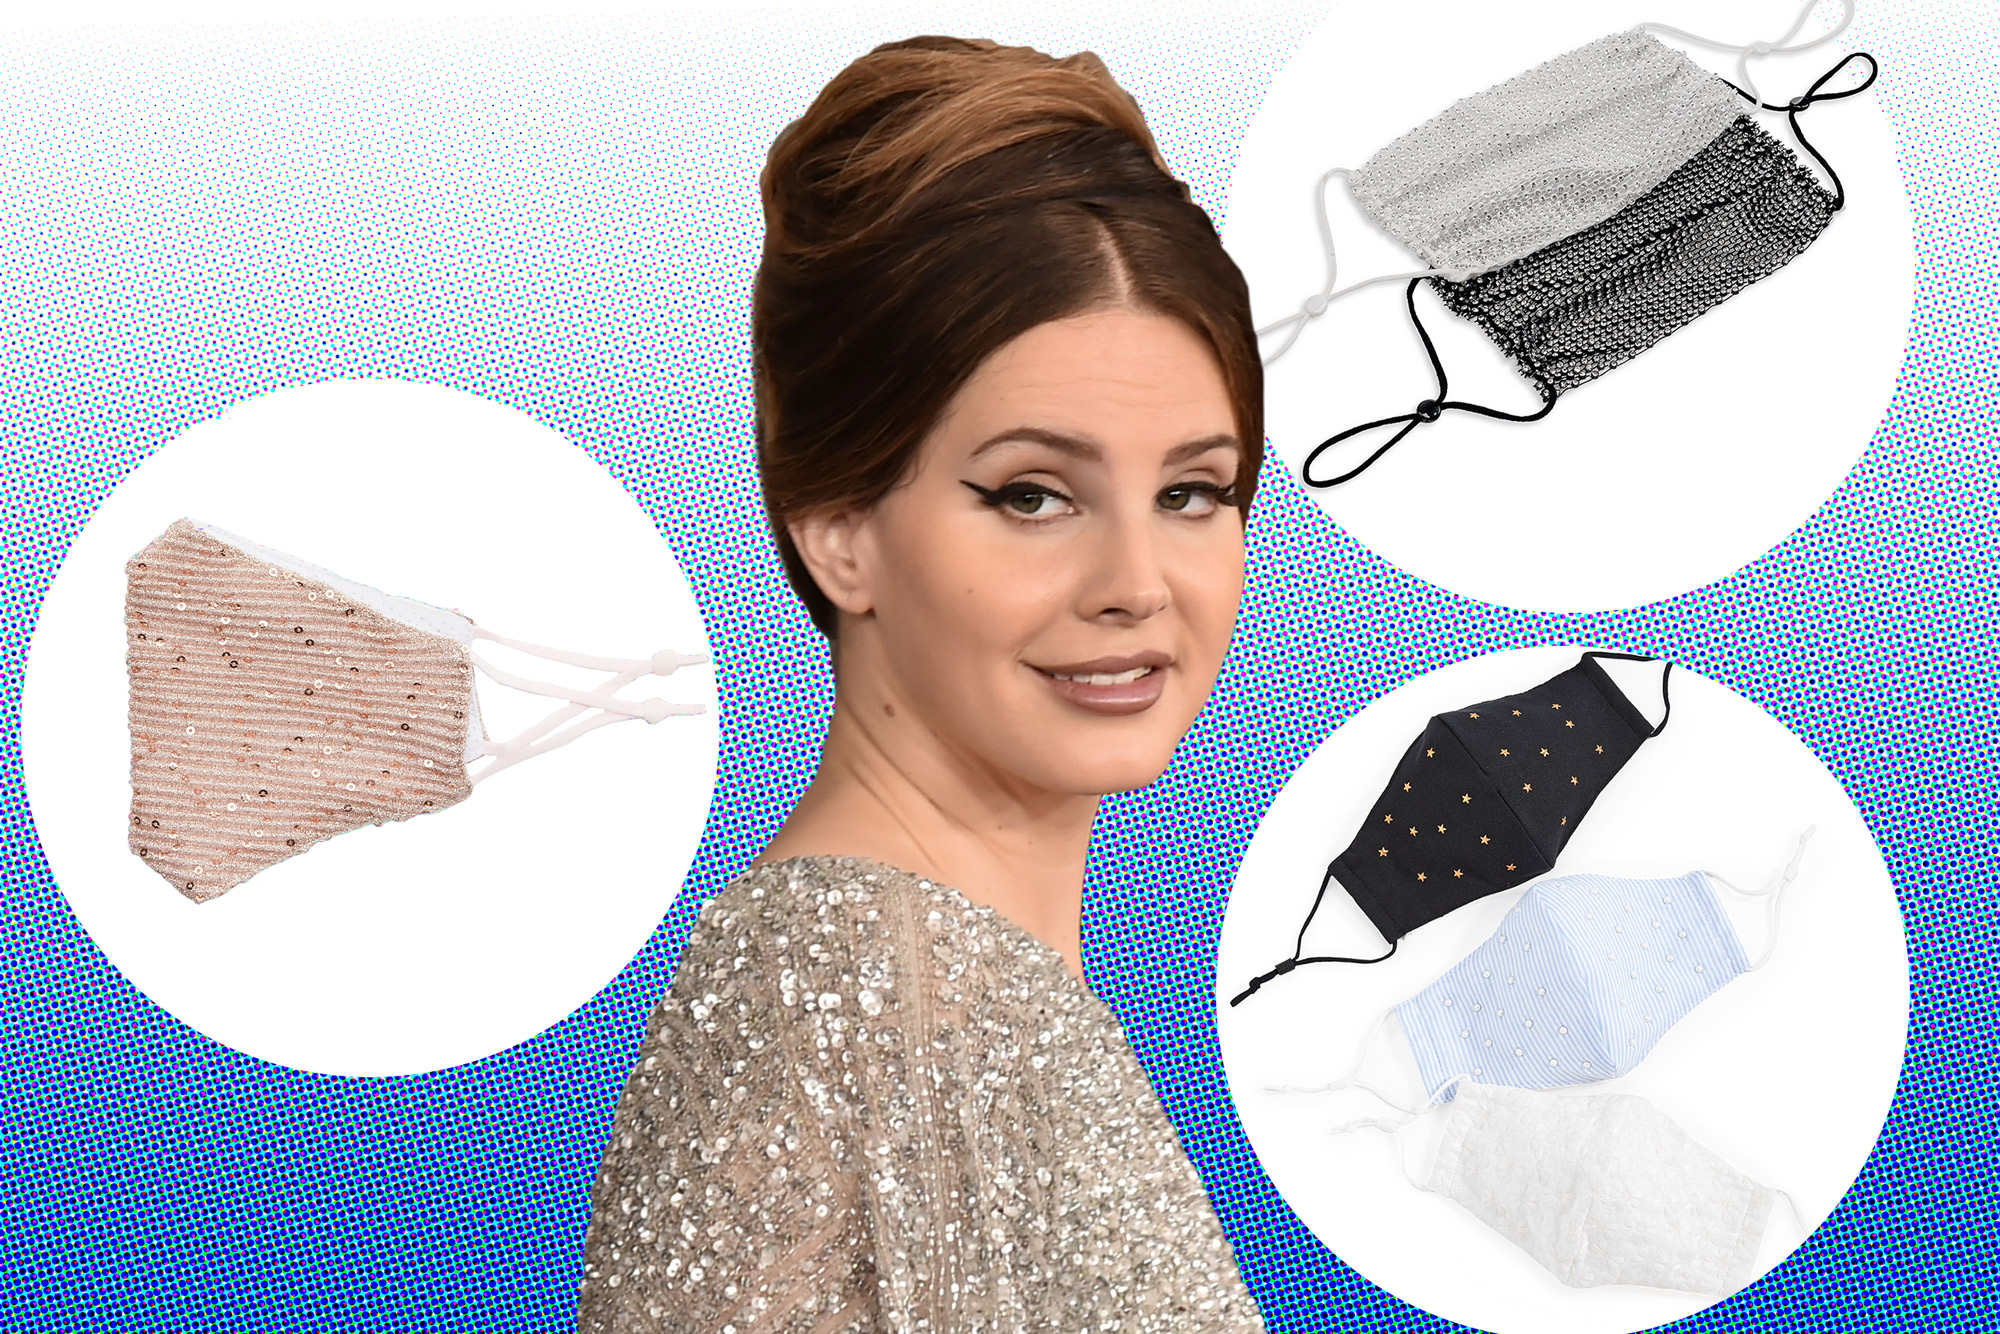 Lana Del Rey Please Wear One Of These Face Masks Instead